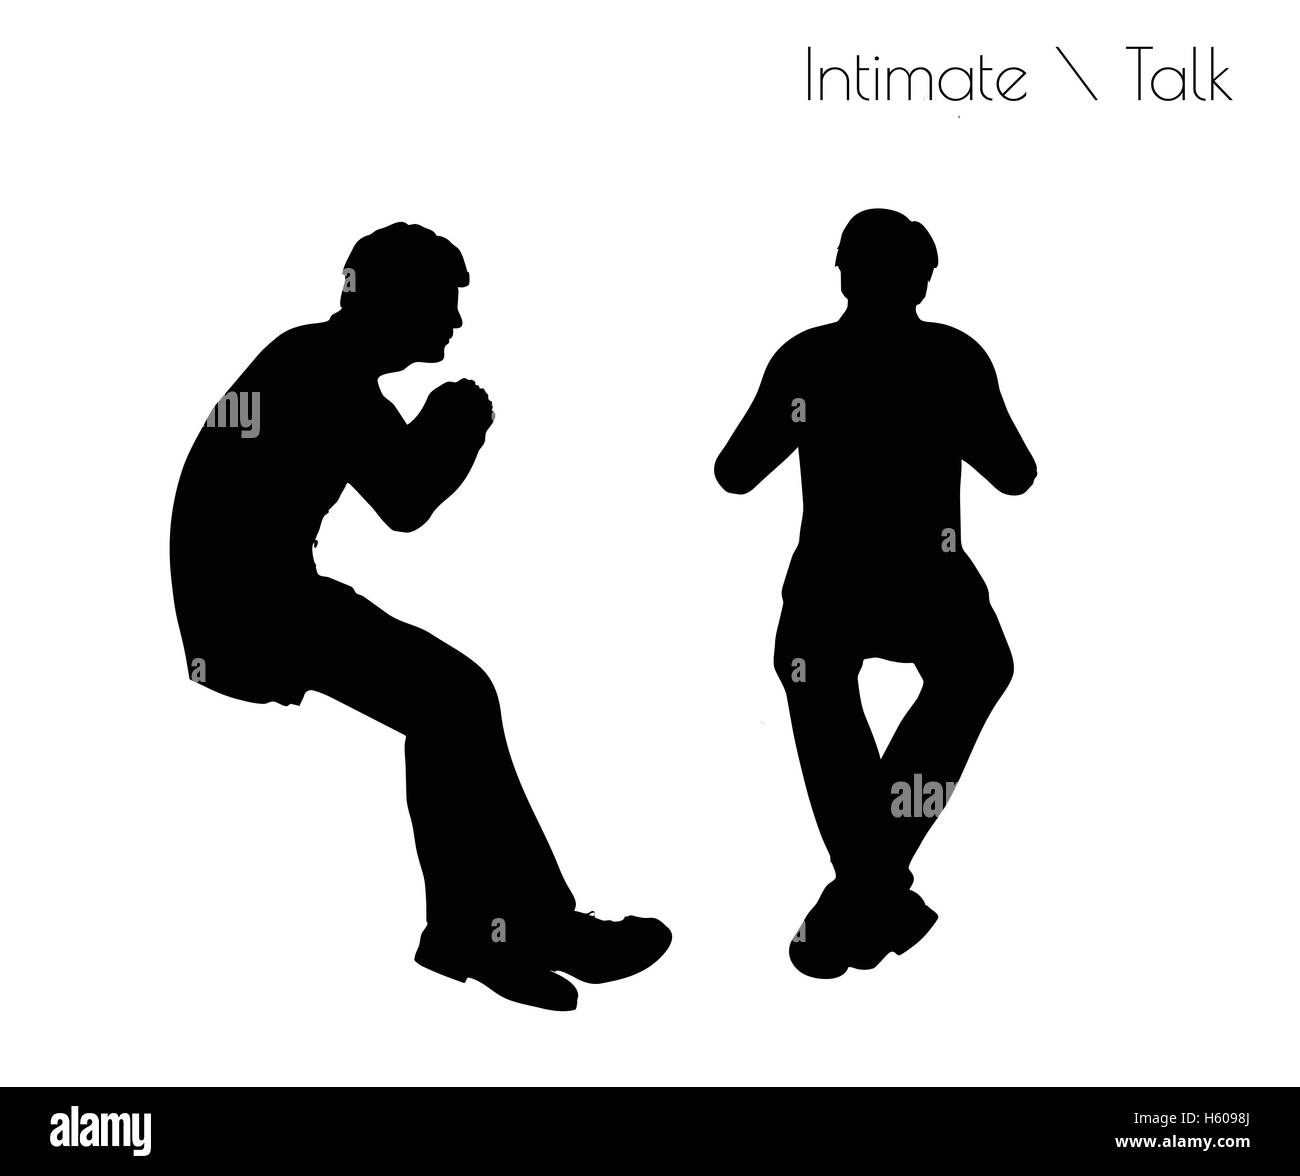 EPS 10 vector illustration of man in Conversation Intimate Talk  pose on white background Stock Vector